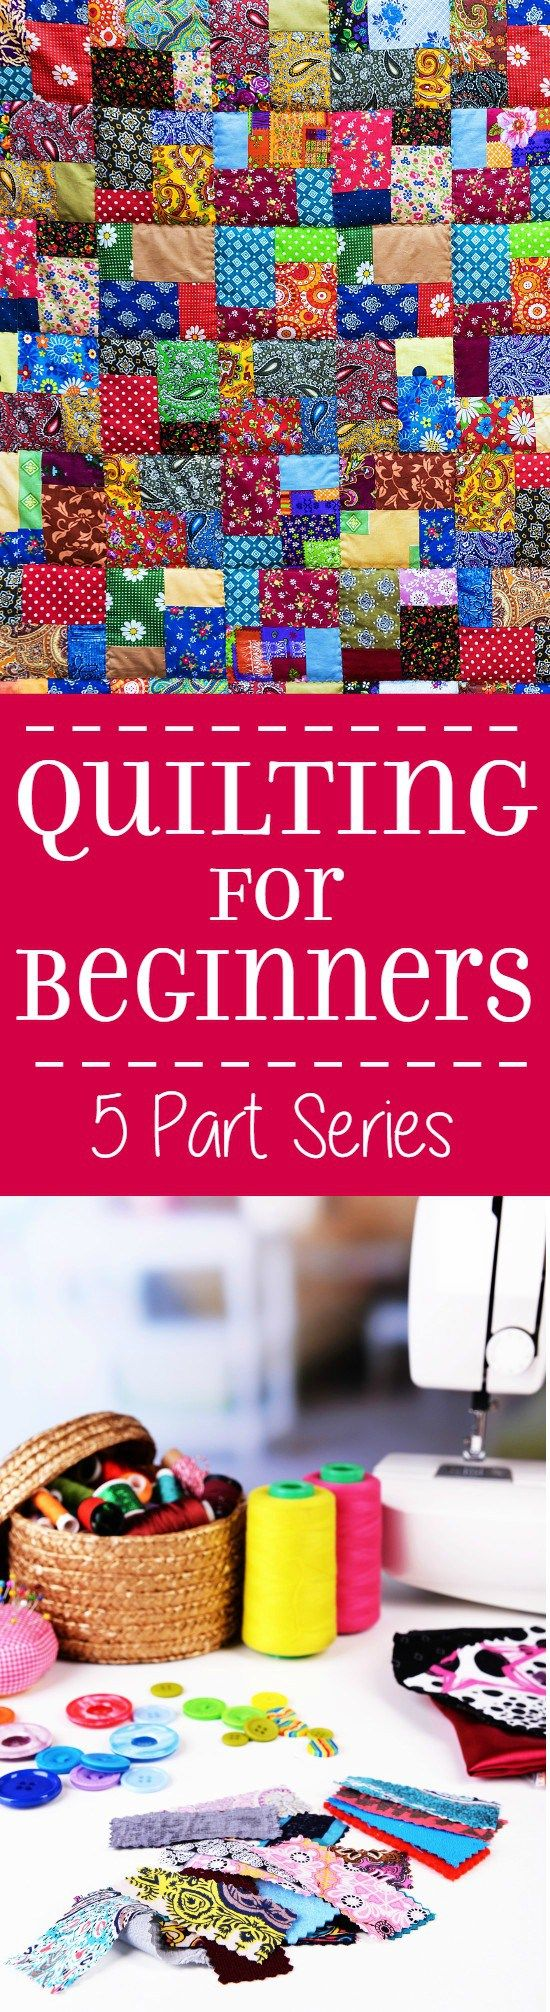 Quilting for Beginners - 5 Part Series